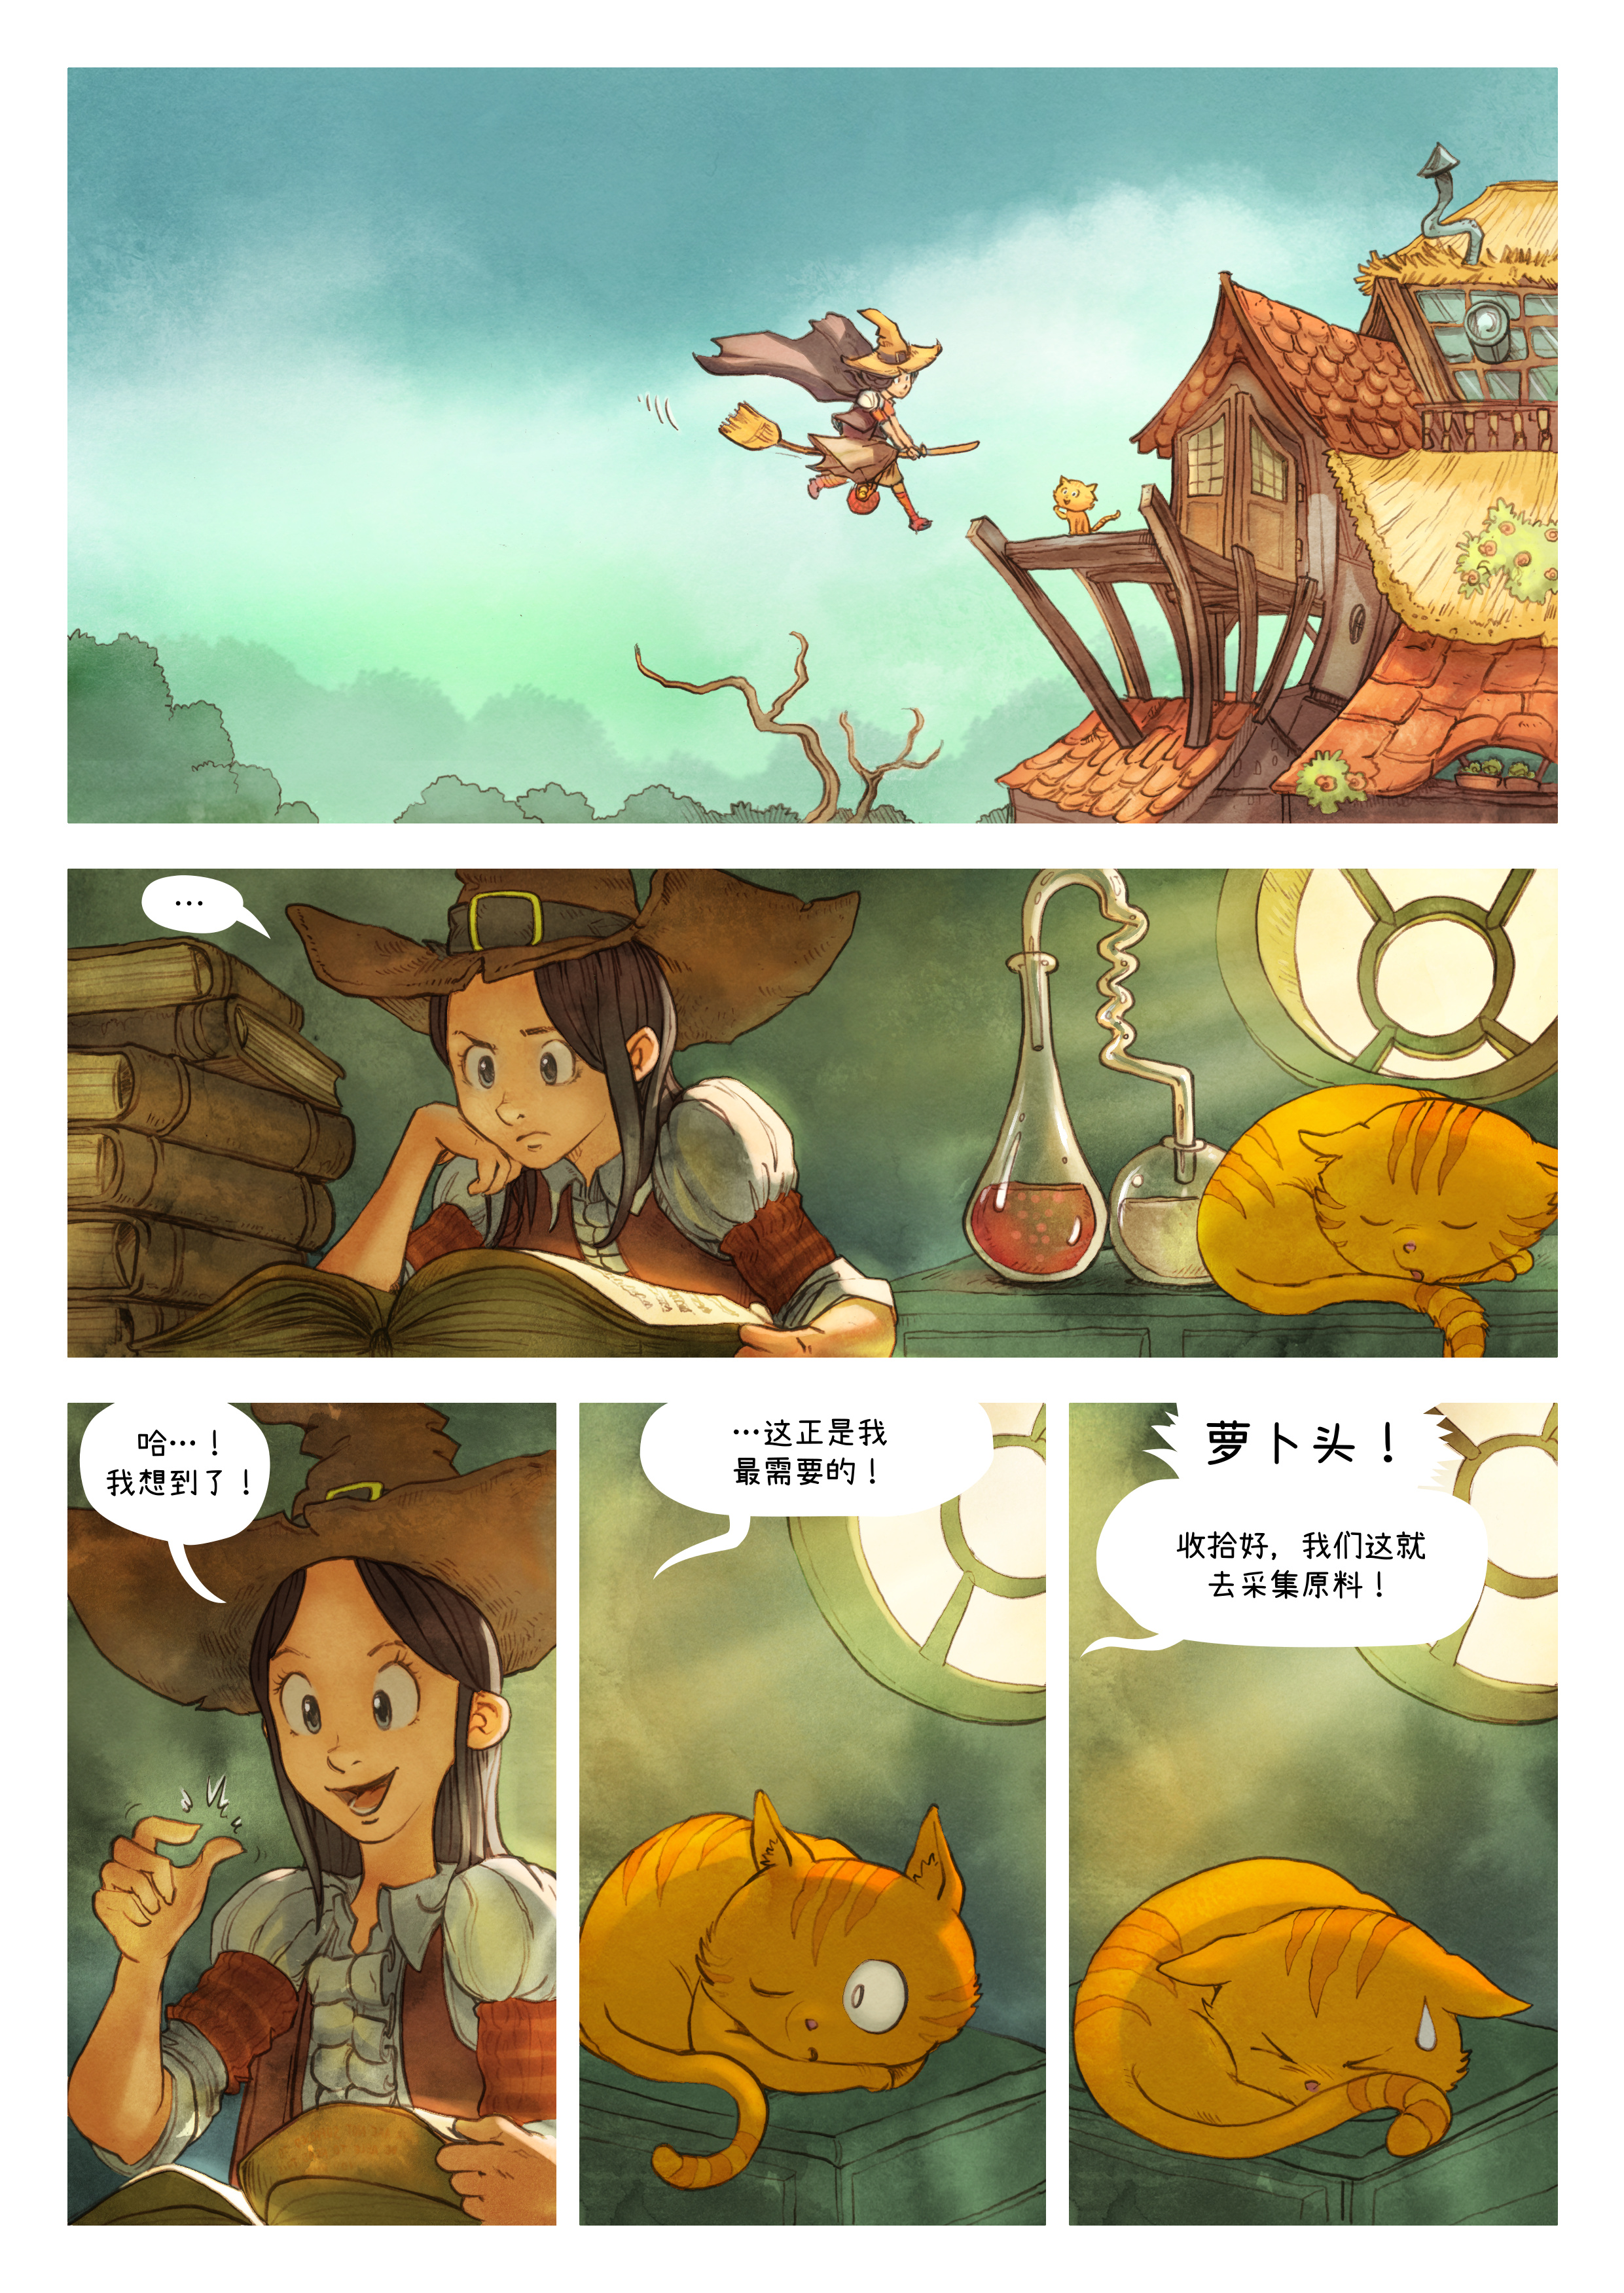 A webcomic page of Pepper&Carrot, 漫画全集 3 [cn], 页面 4